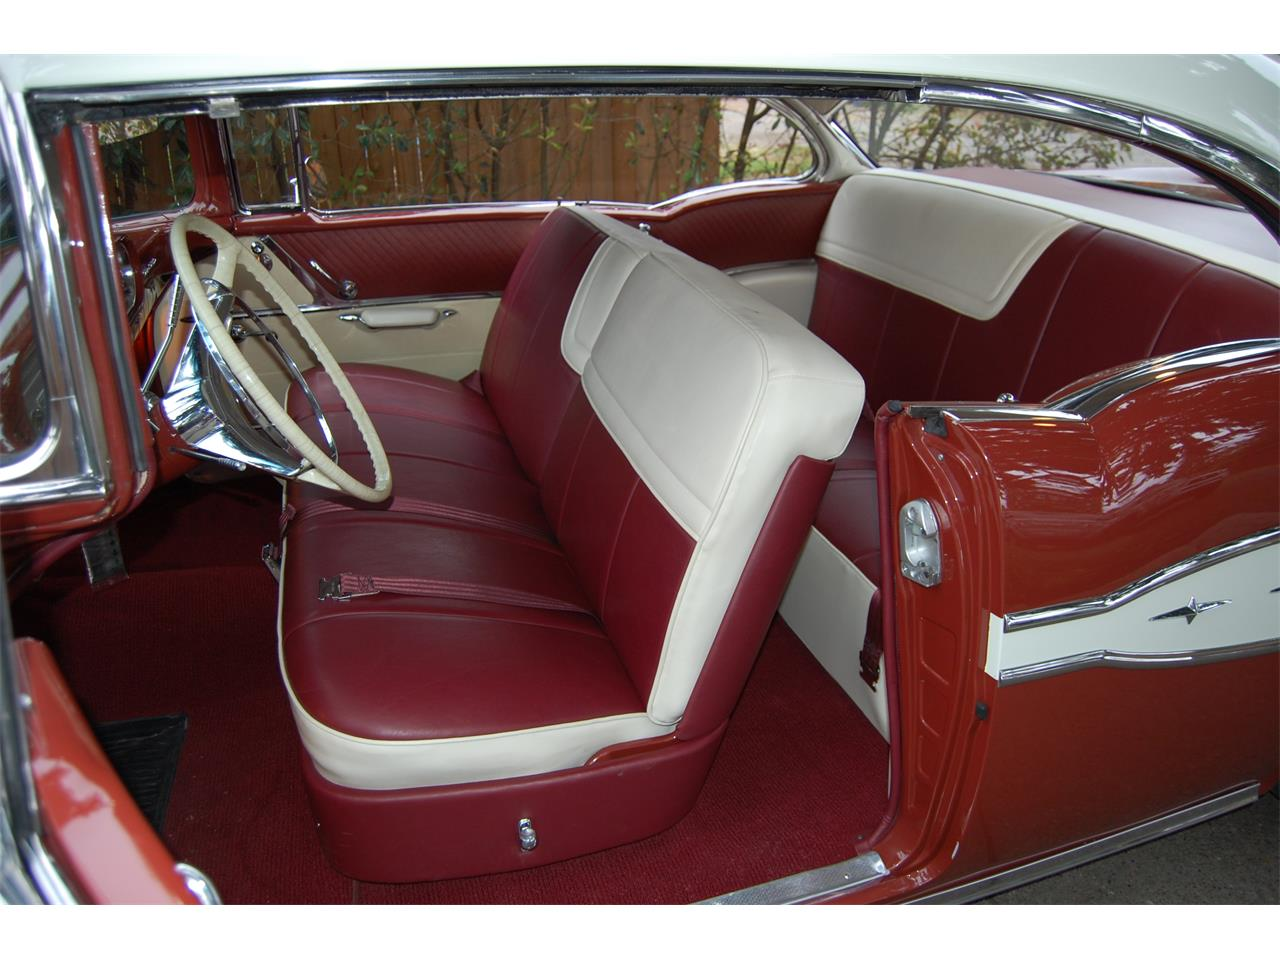 Large Picture of Classic 1957 Pontiac Star Chief - $32,000.00 Offered by a Private Seller - L85F